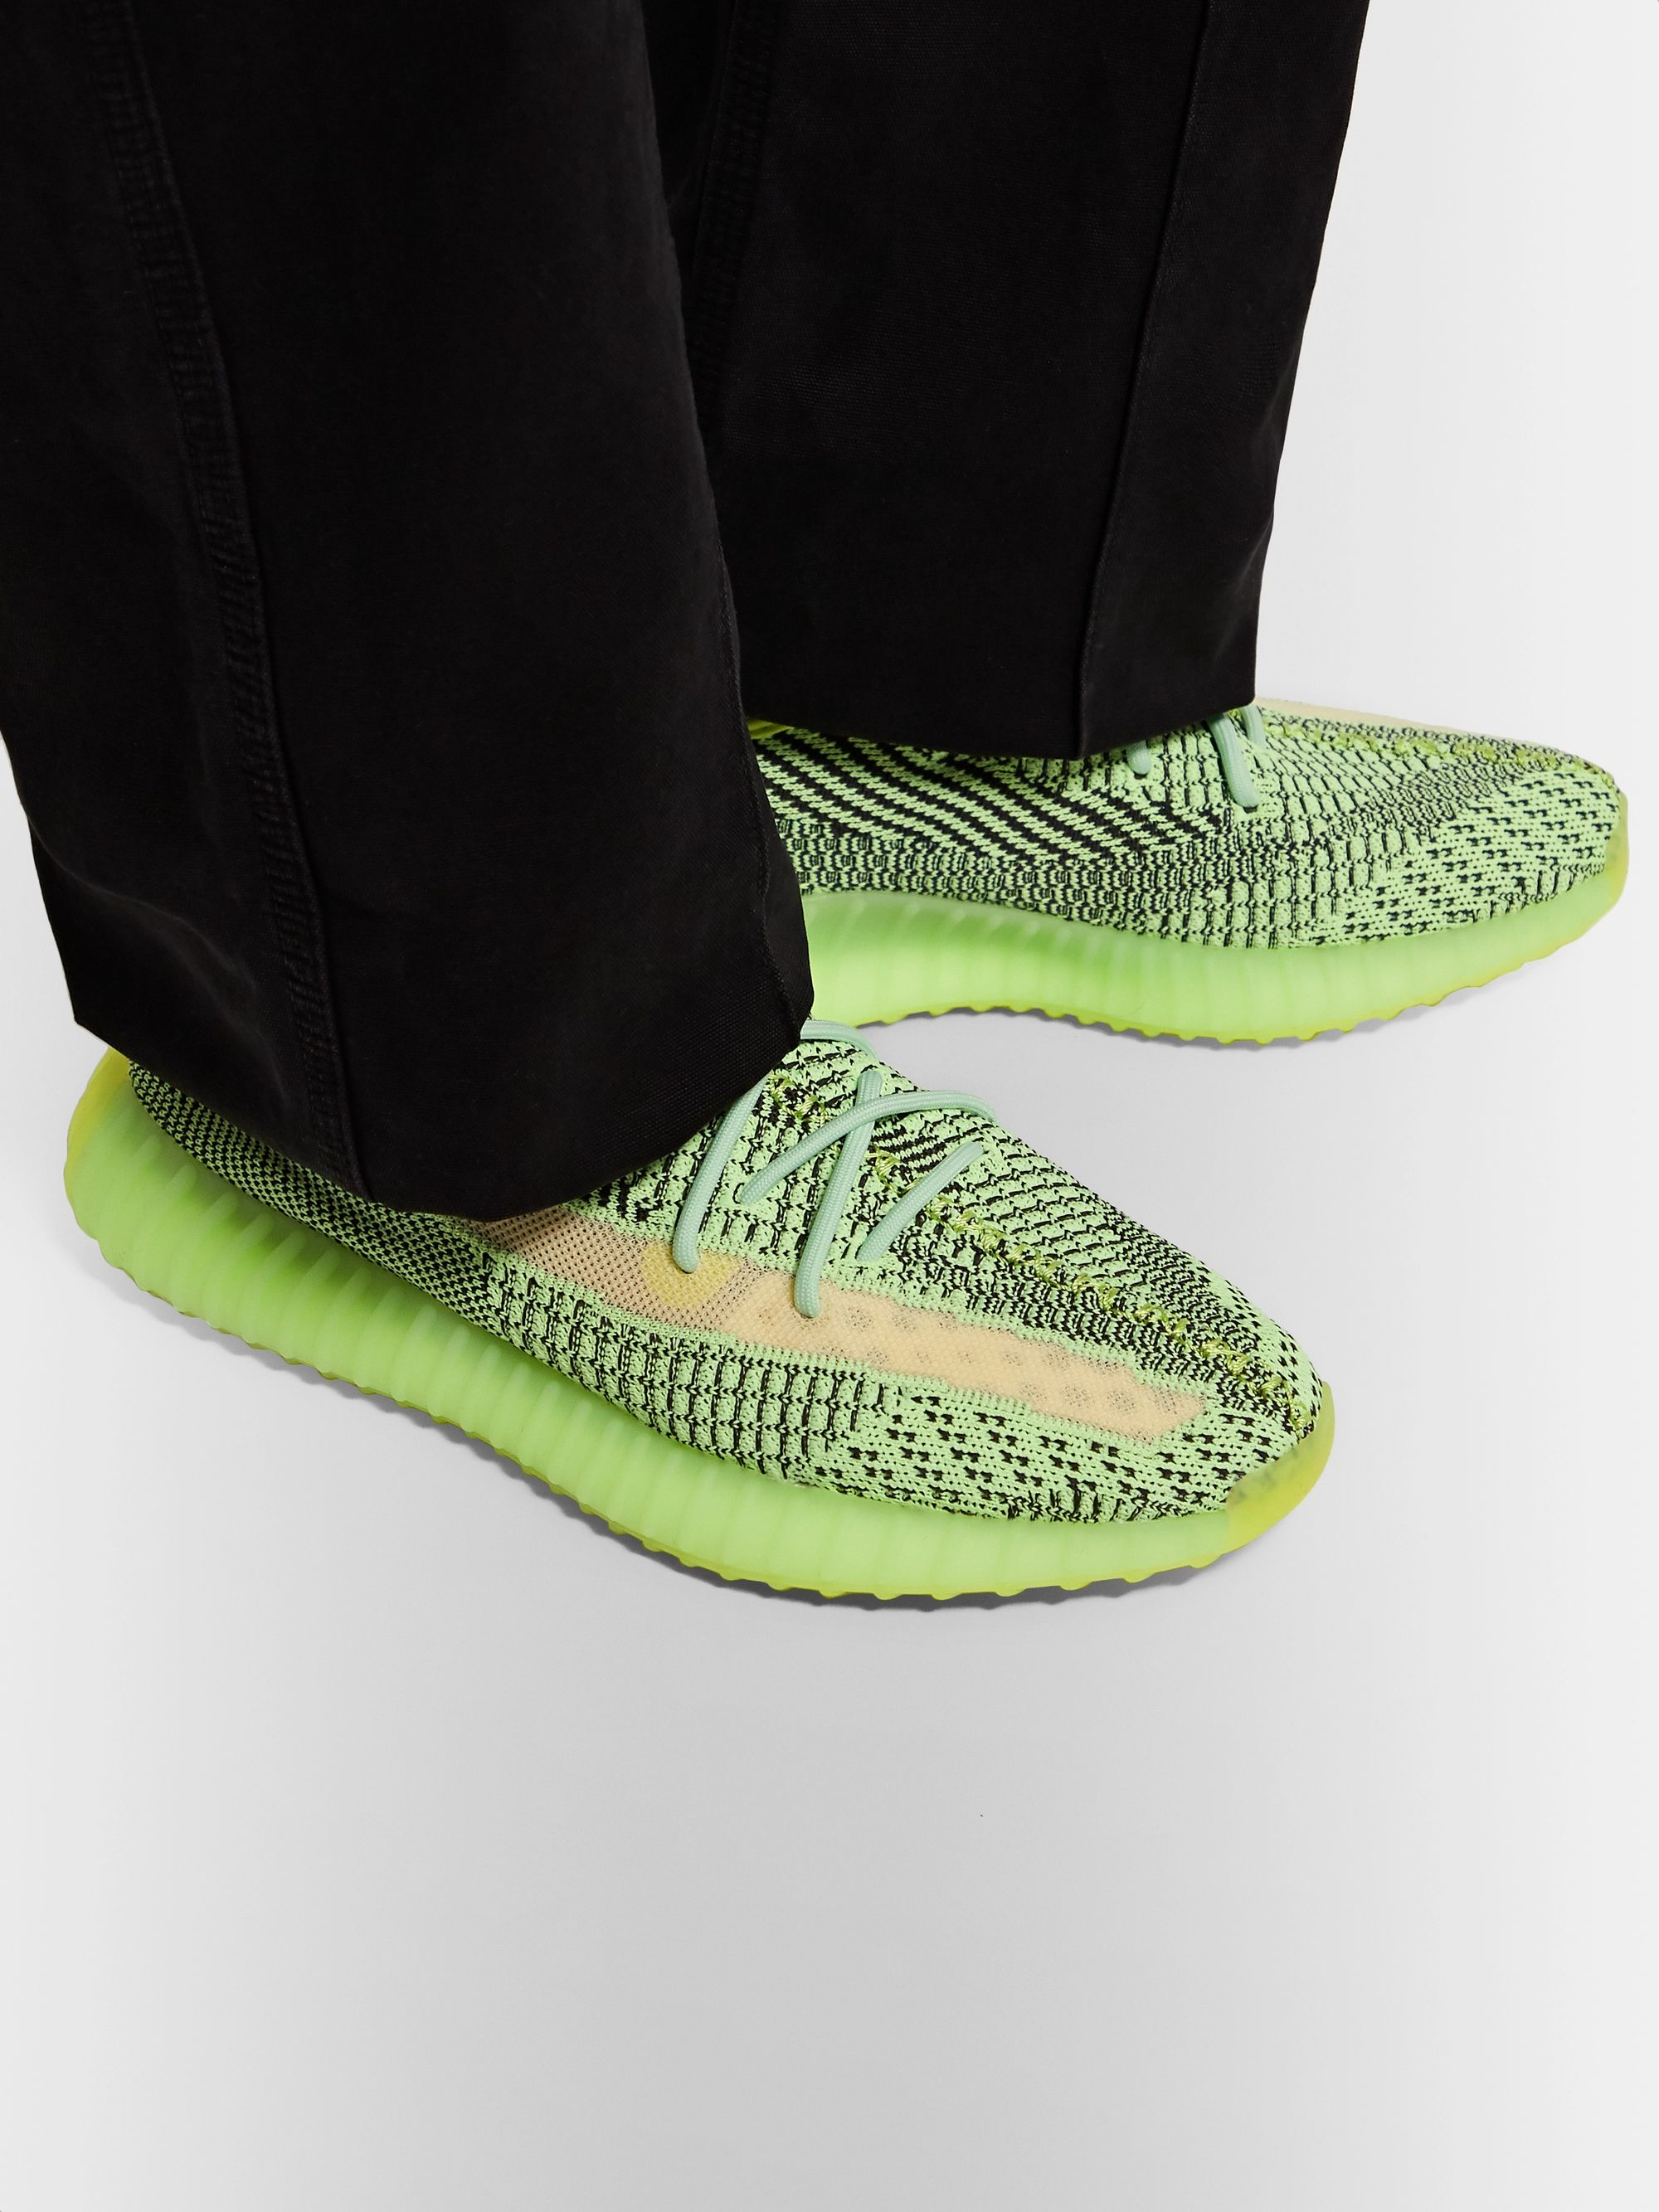 adidas Originals Yeezy Boost 350 V2 Glow-in-the-Dark Primeknit and Mesh Sneakers